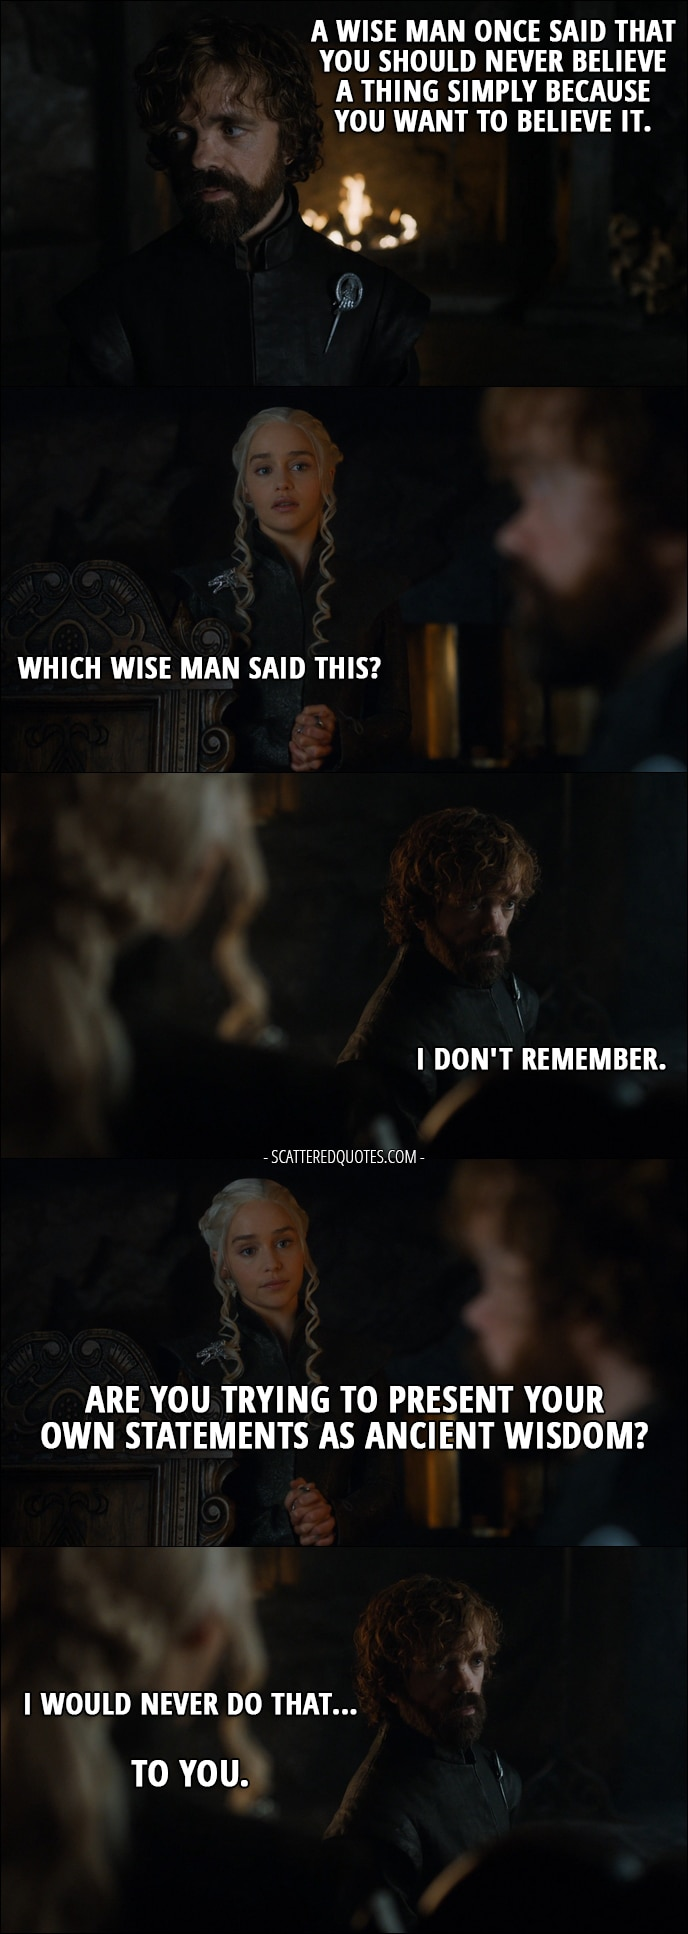 Quote from Game of Thrones 7x03 - Tyrion Lannister: A wise man once said that you should never believe a thing simply because you want to believe it. Daenerys Targaryen: Which wise man said this? Tyrion Lannister: I don't remember. Daenerys Targaryen: Are you trying to present your own statements as ancient wisdom? Tyrion Lannister: I would never do that... To you.